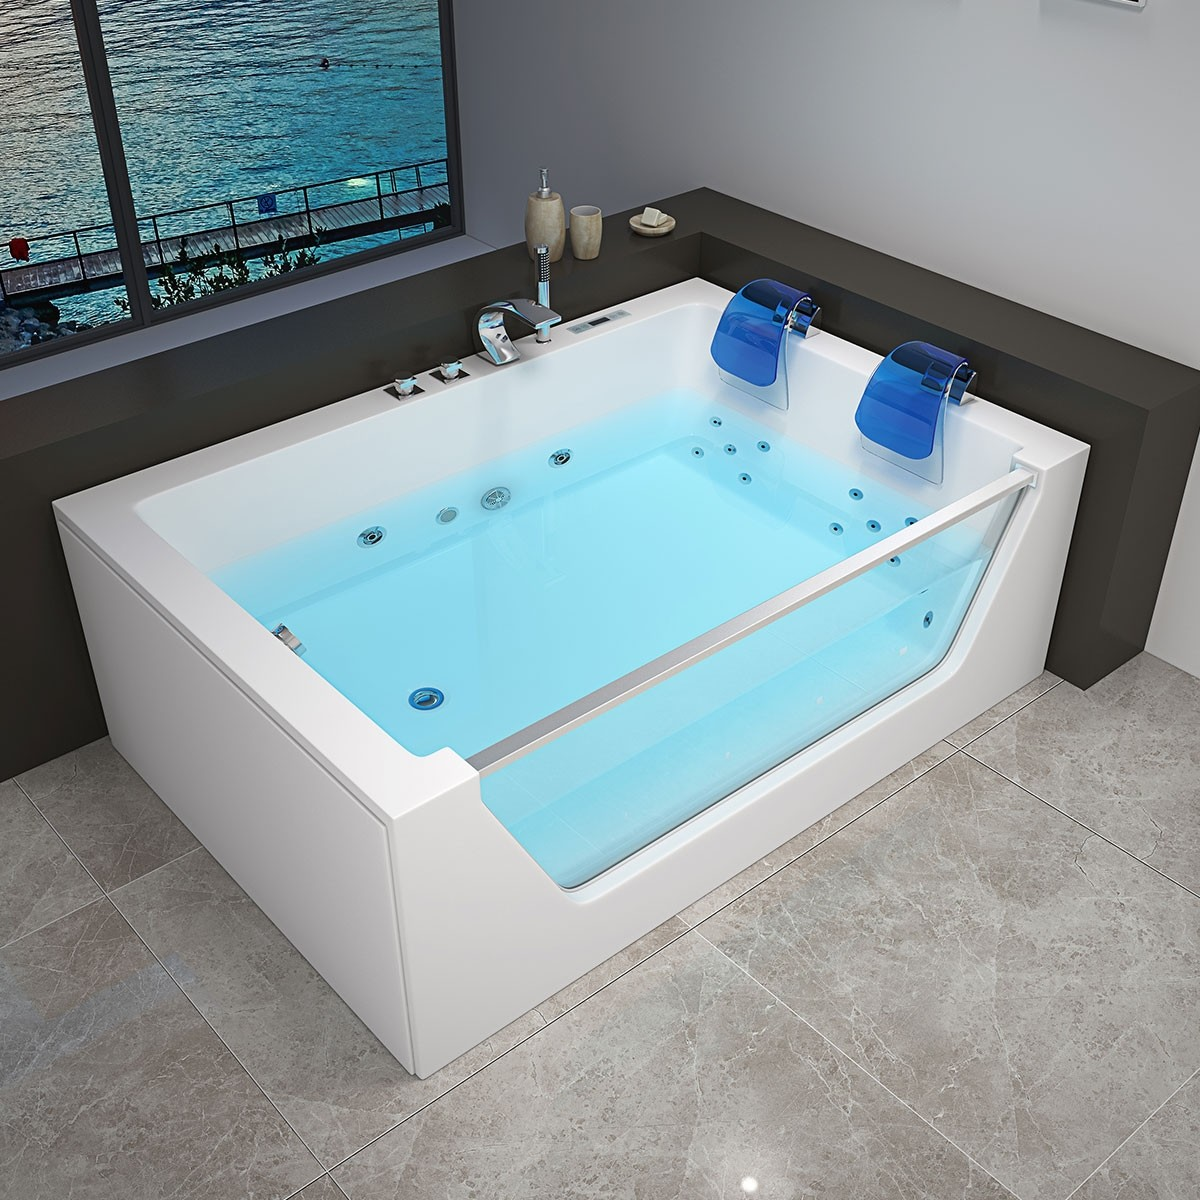 Decoraport 69 x 47 In Whirlpool Tub with Computer Panel, Heater, Ozone, Light (DK-RL-6136)